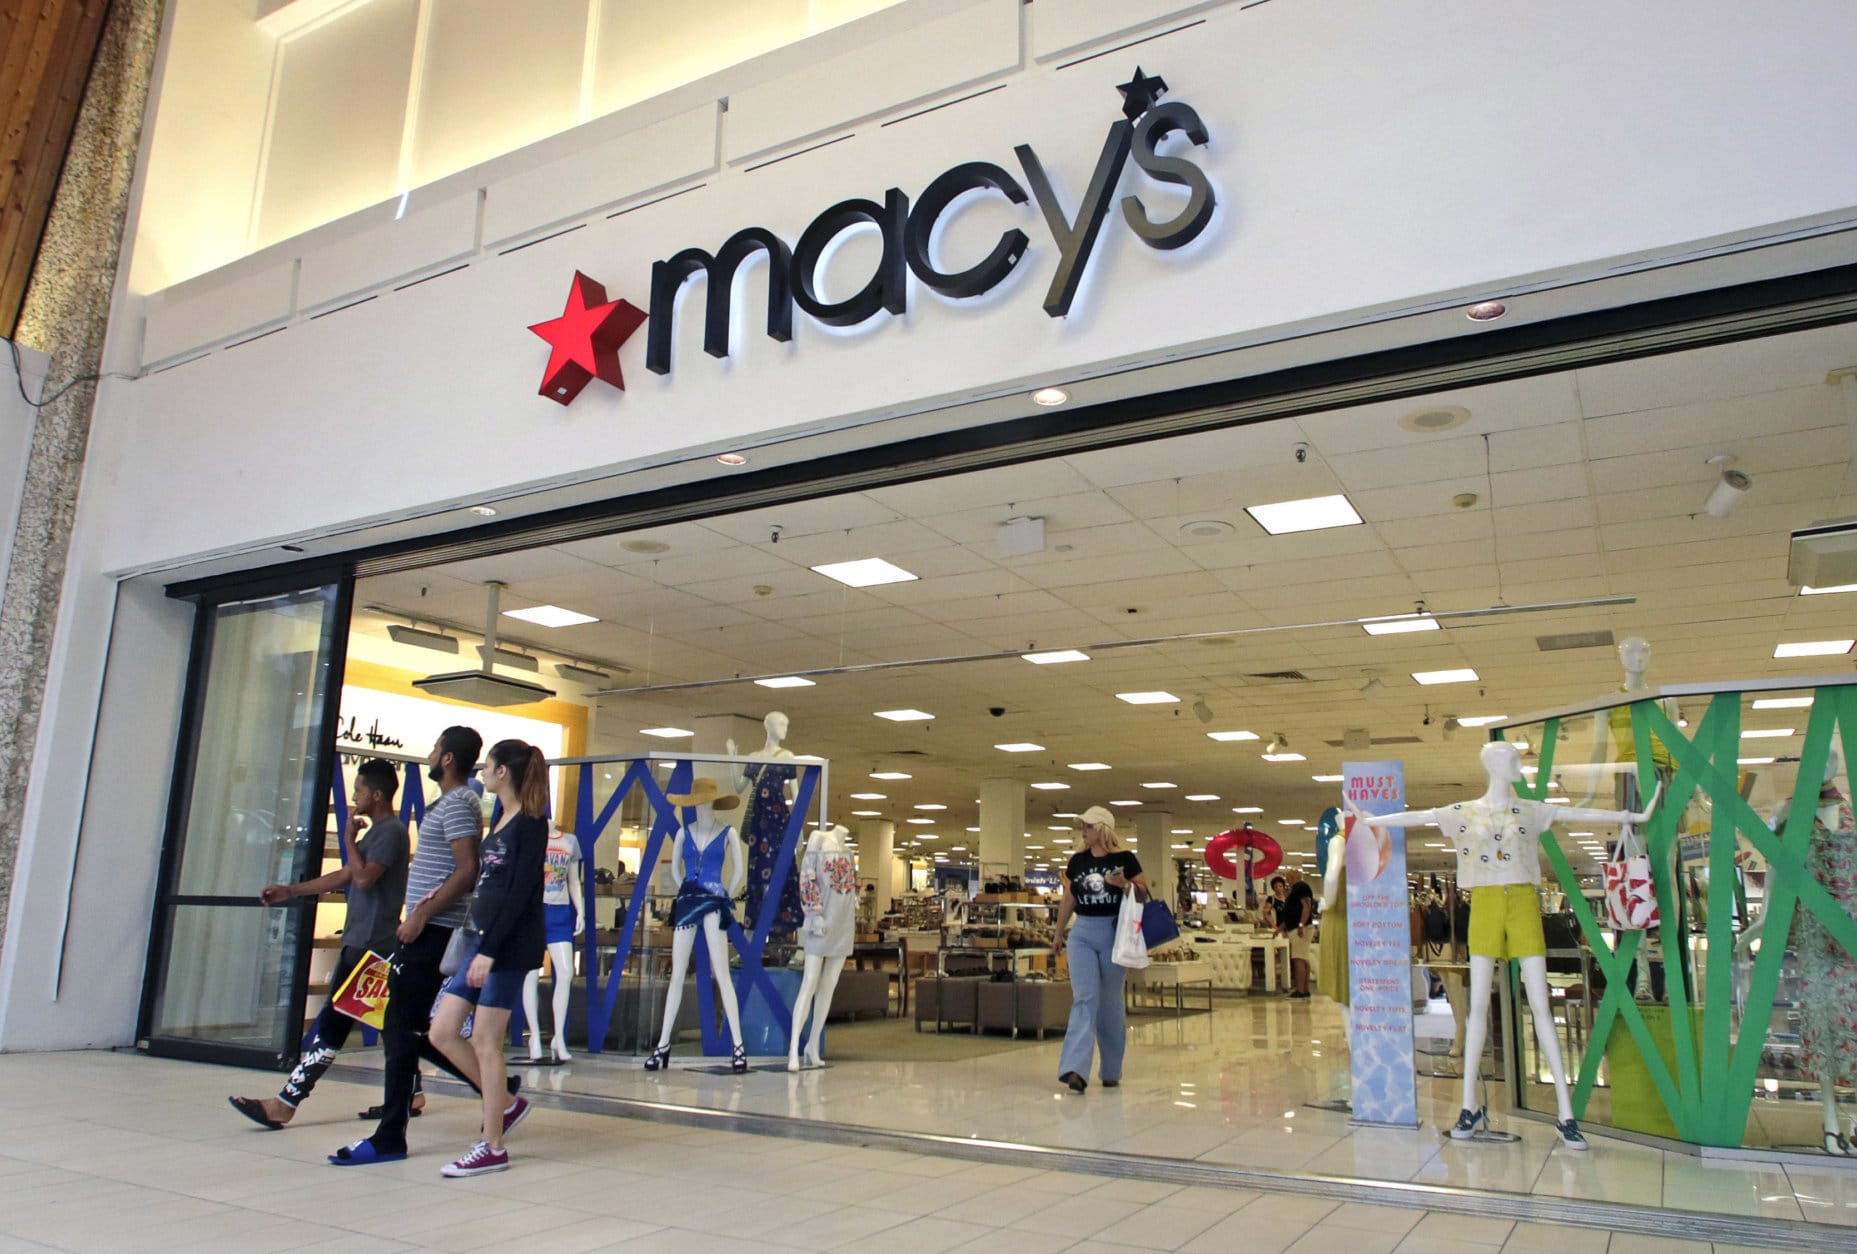 In this Wednesday, June 7, 2017, photo, people walk out of a Macy's department store in Hialeah, Fla. Macy's is increasing the number of temporary workers it's hiring for distribution and warehouses for the holiday season as it chases fast growing e-commerce sales. But overall holiday hiring will fall nearly 4 percent. (AP Photo/Alan Diaz)